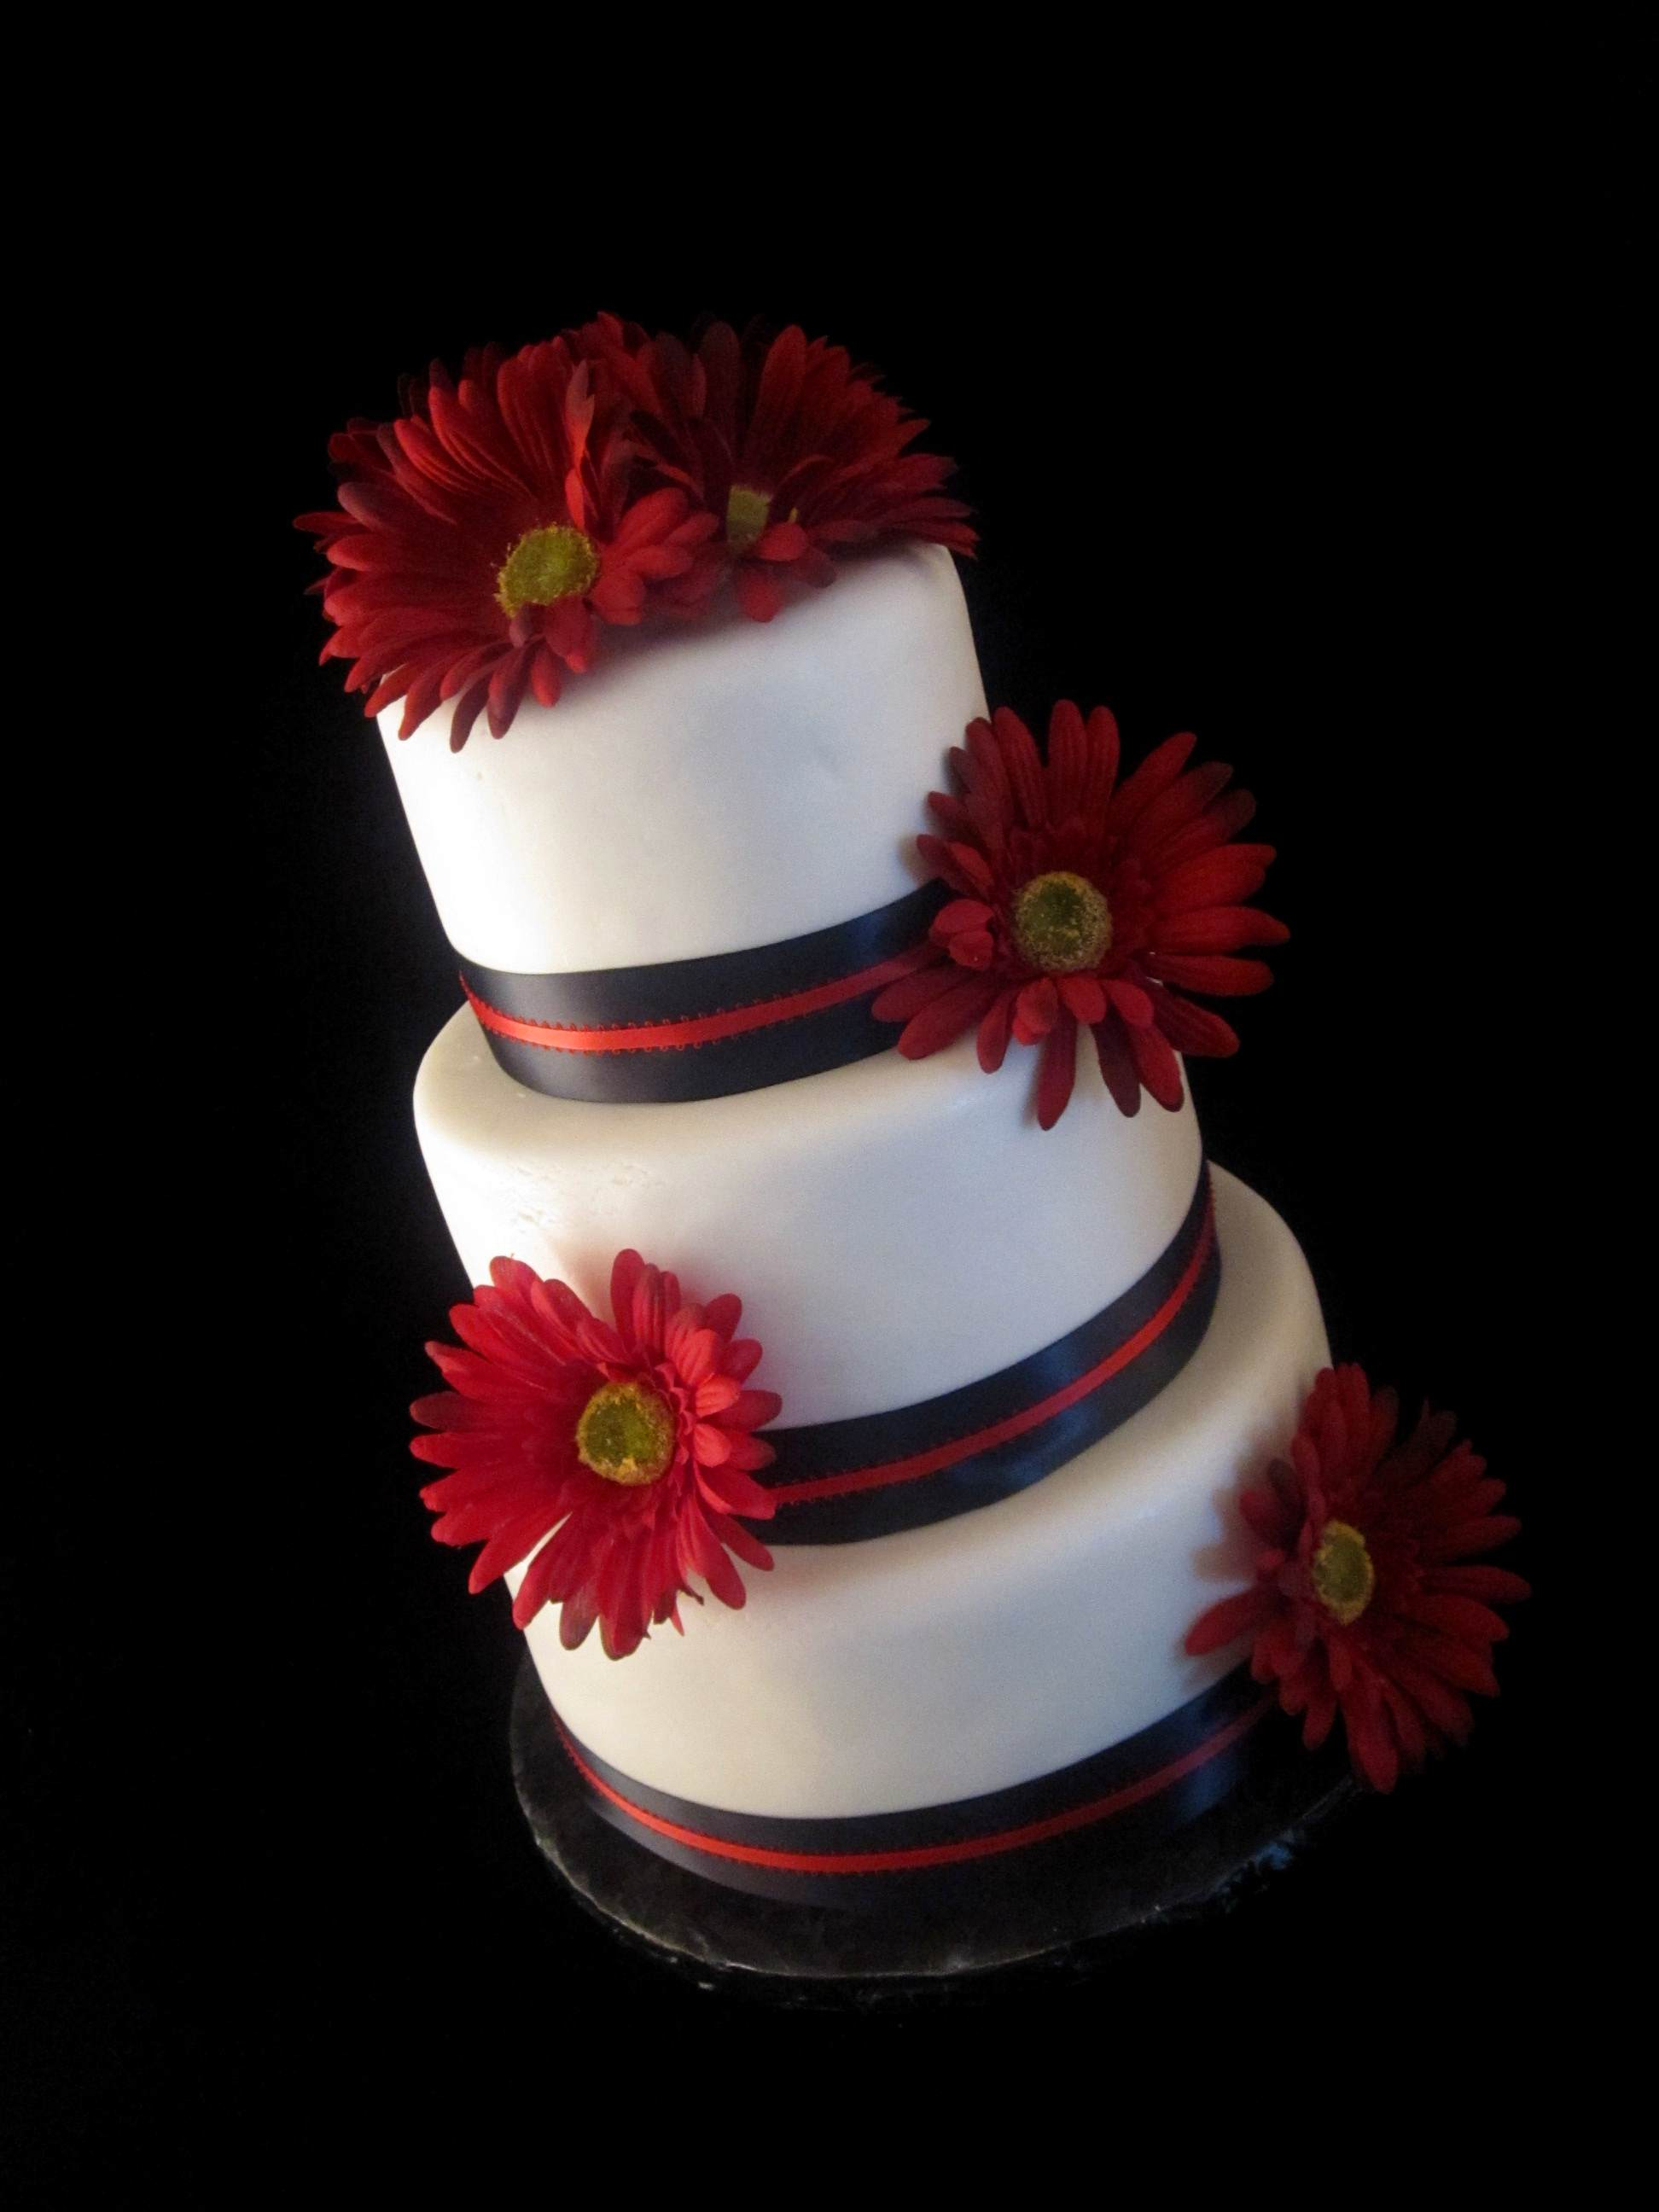 Black and White Wedding Cakes That Makes Your Mouth Water – Jamaica ...